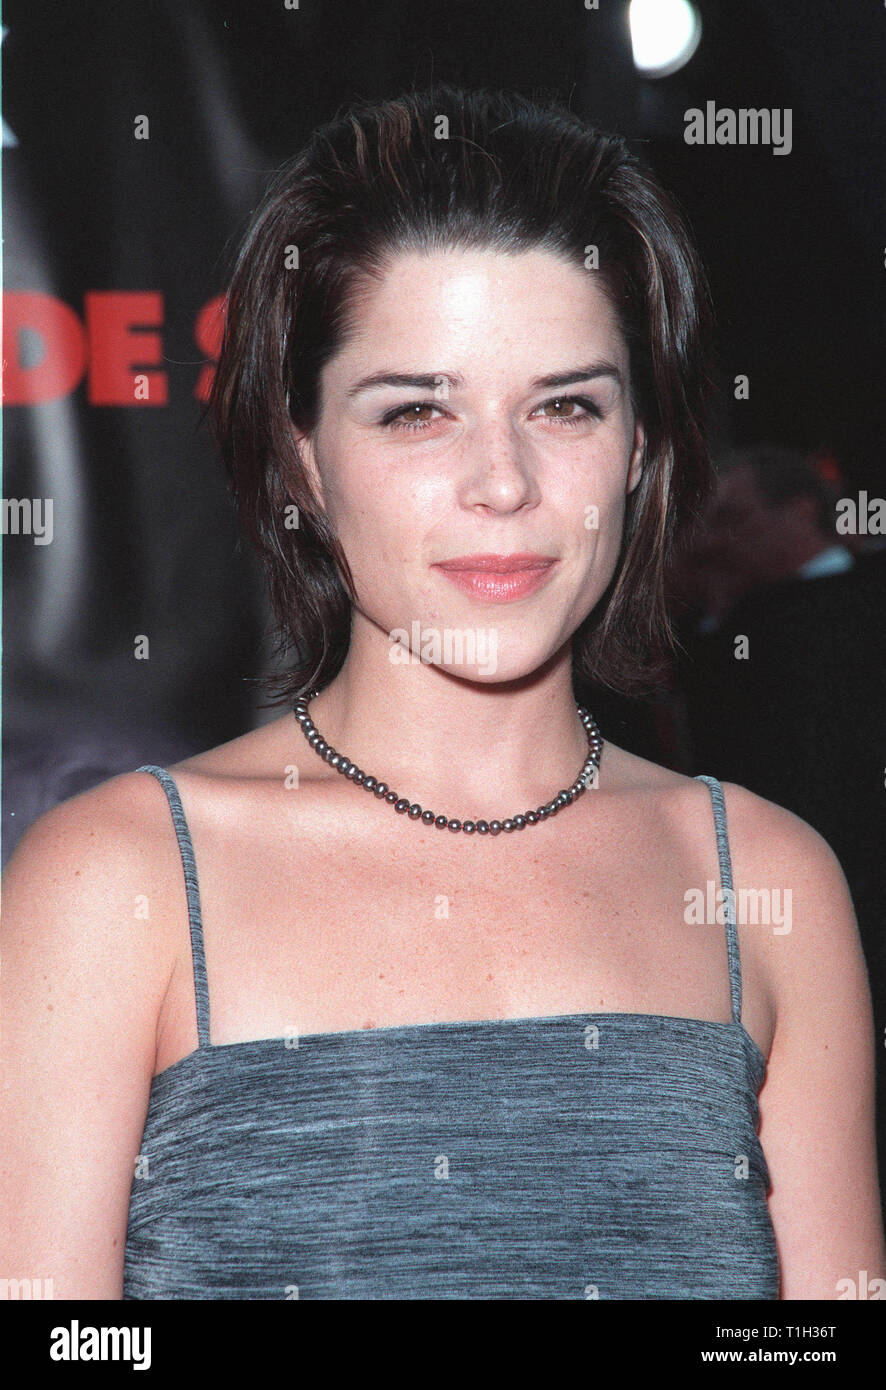 LOS ANGELES, CA. July 13, 1999:  Actress NEVE CAMPBELL at the world premiere, in Los Angeles, of  'Eyes Wide Shut'. © Paul Smith / Featureflash - Stock Image